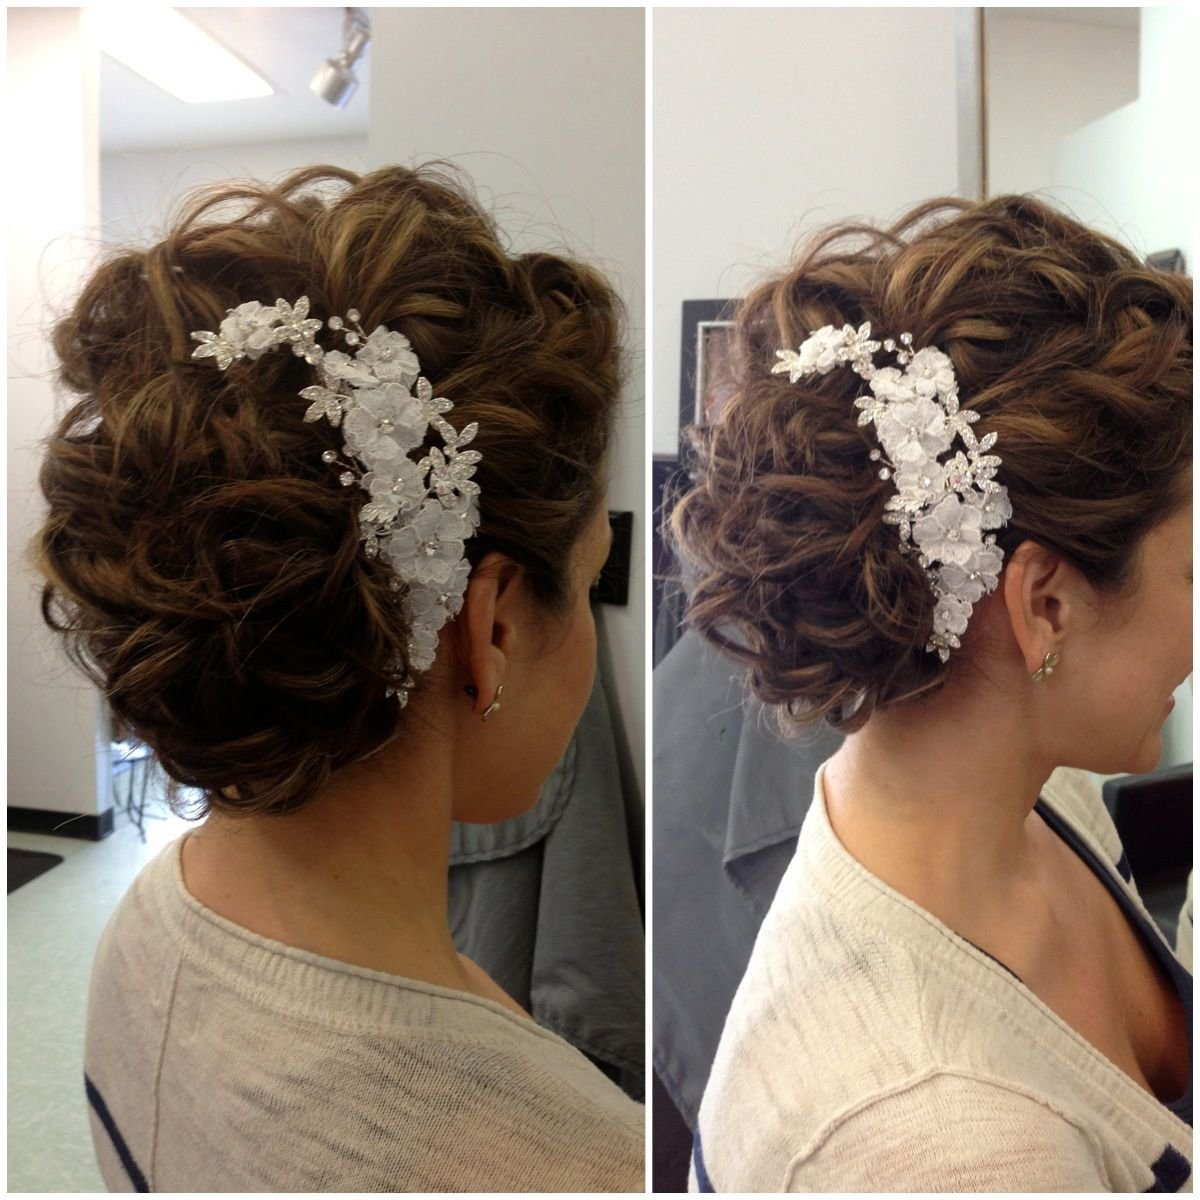 The Best Wedding Hair Updo Hair Accessories Loose Curls Pictures